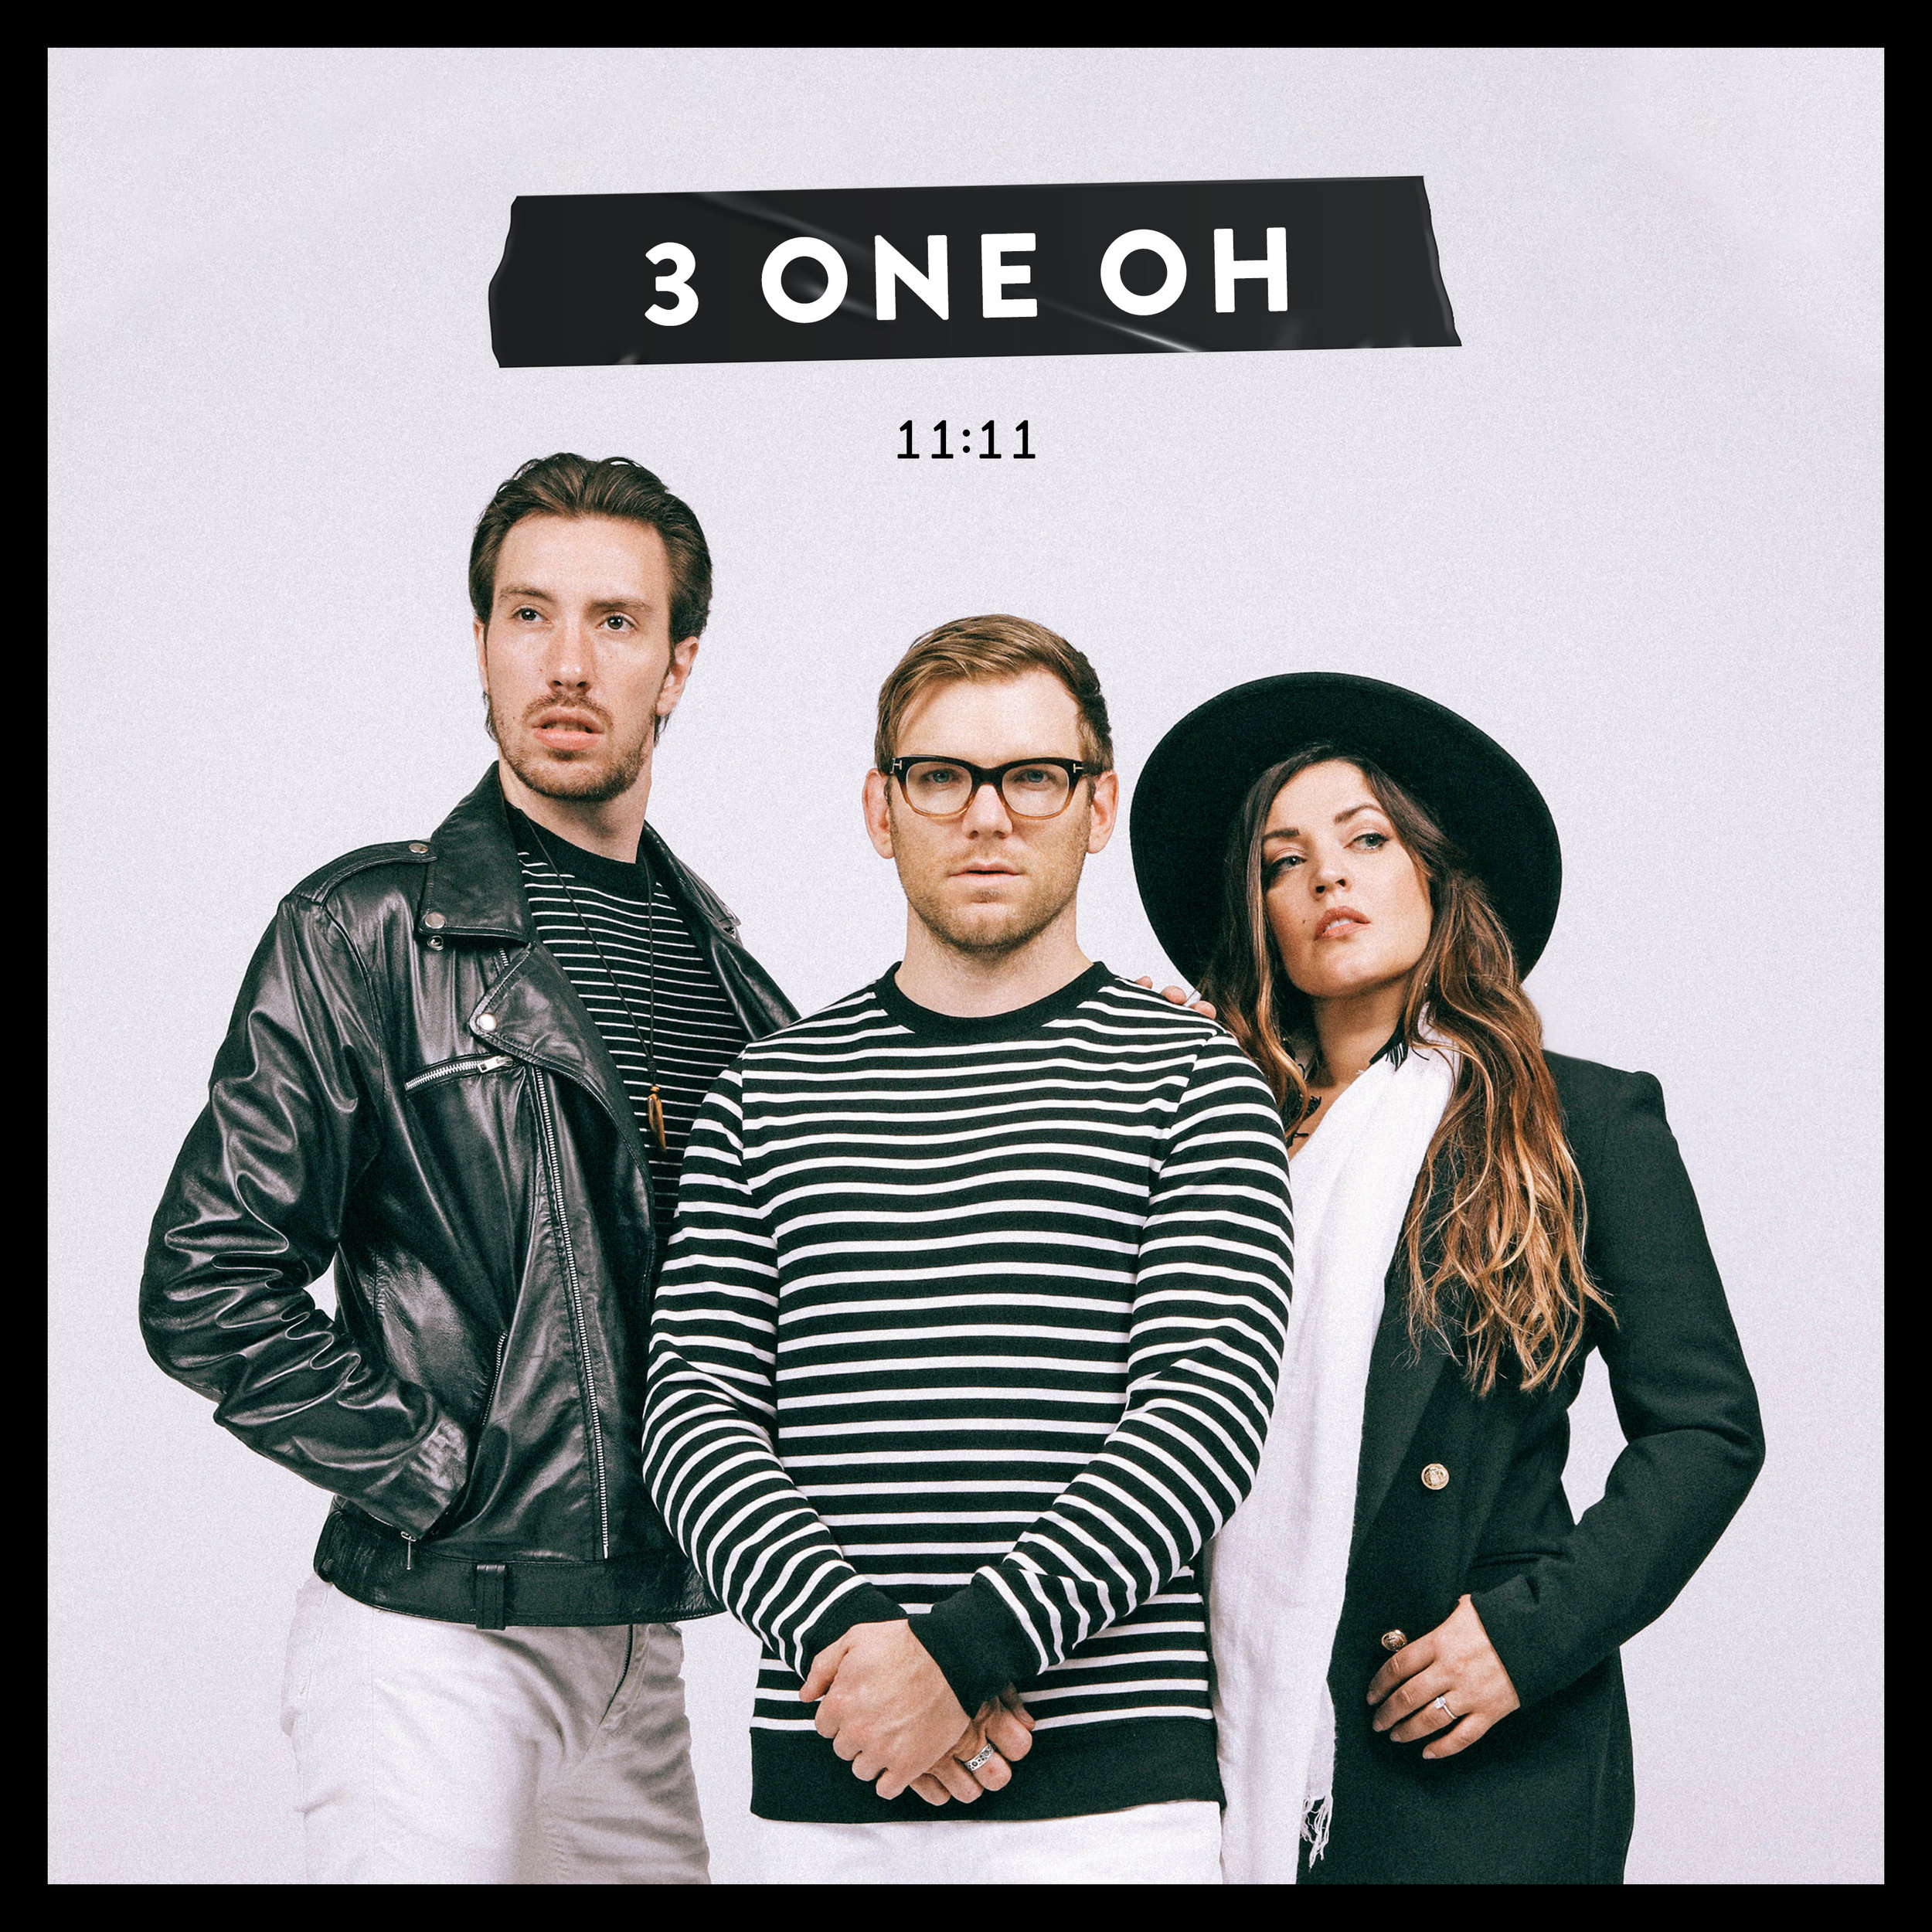 3 One Oh 11 11 Album Cover Andrew Burns Rick Seibold Shari Short.jpg